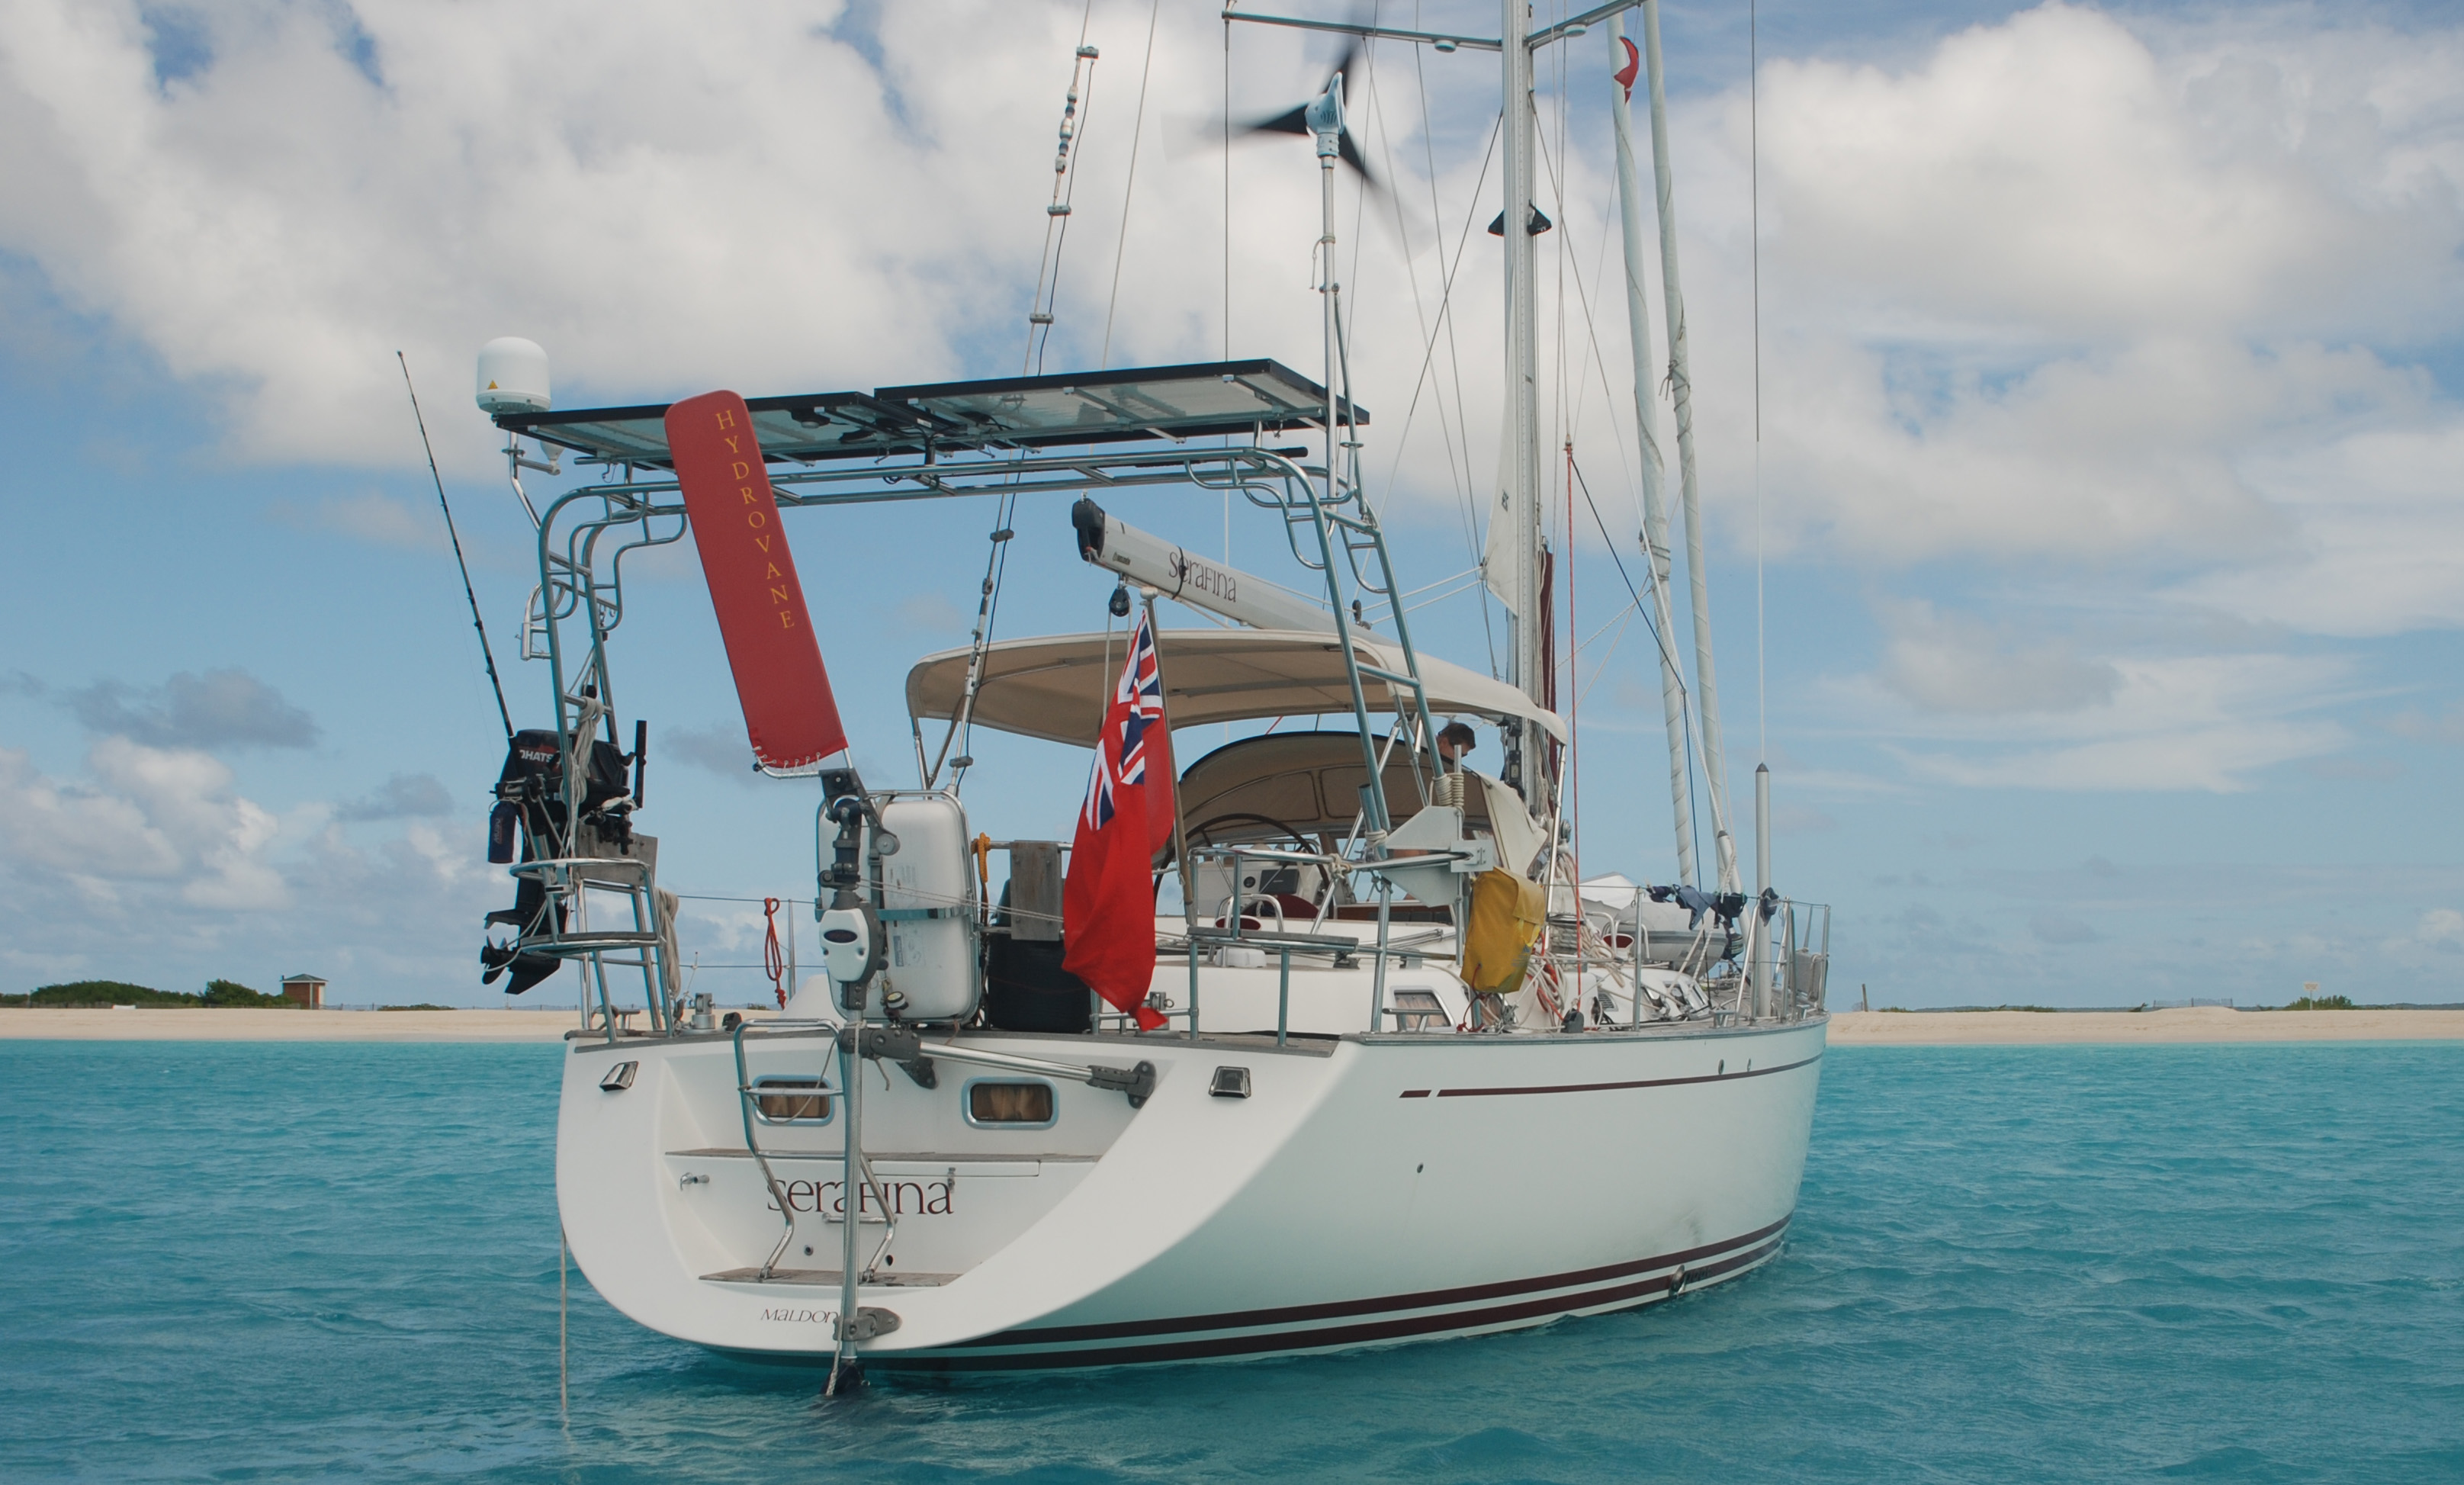 True Stories Hydrovane Wiring Diagram For Baja Islander Anchor Light Contact